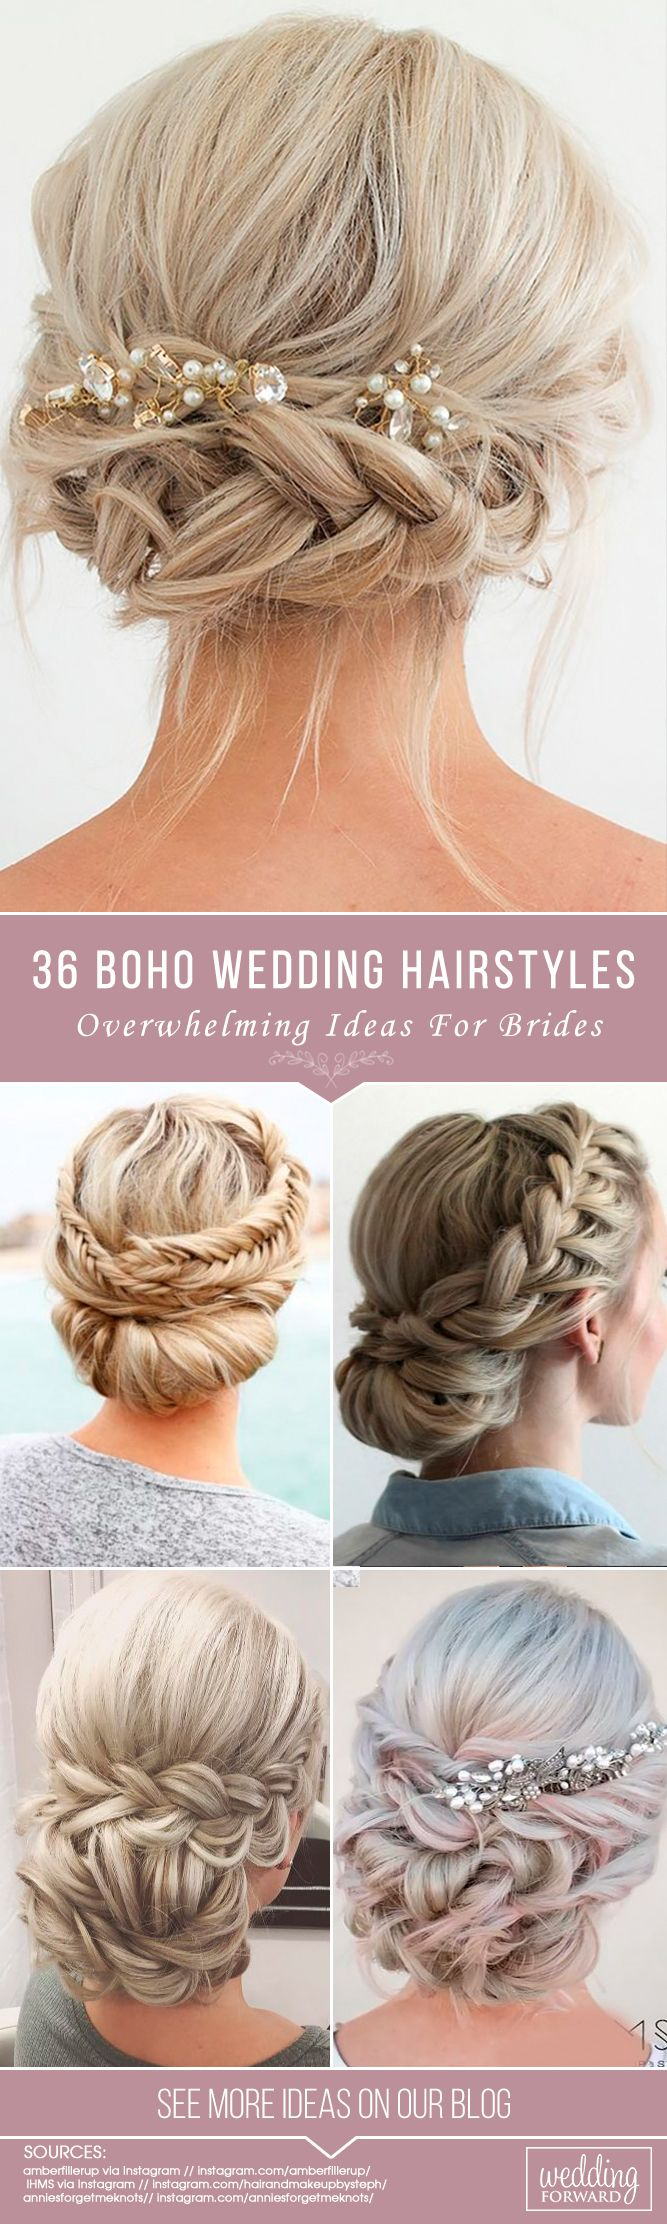 36 Overwhelming Boho Wedding Hairstyles ❤ Here you will find a plethora of boh...